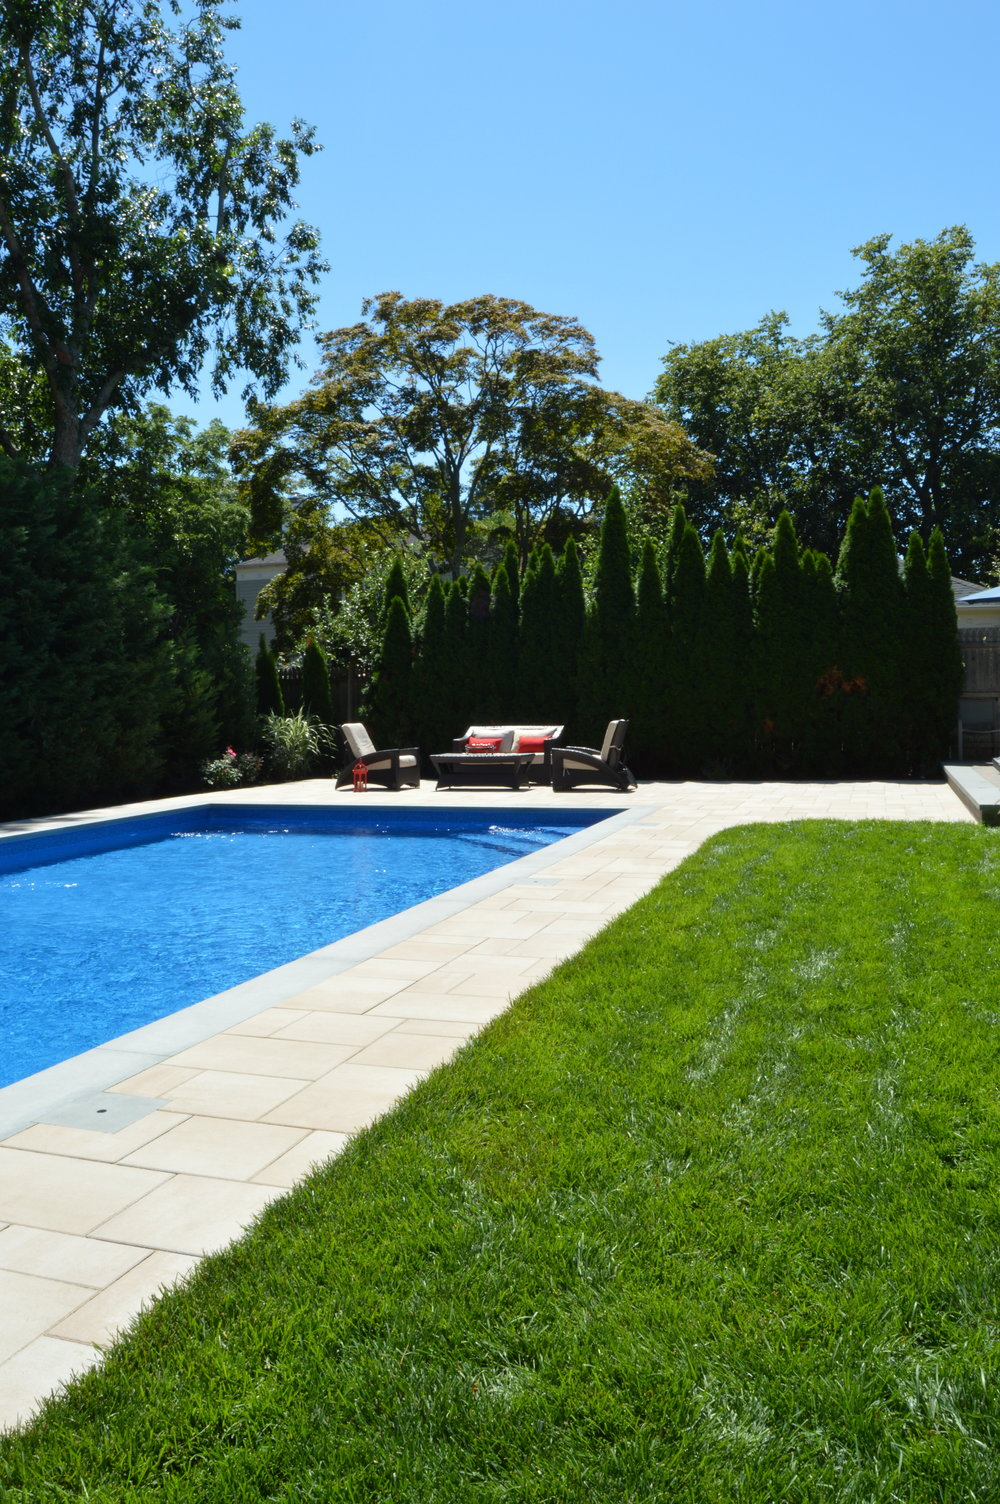 Babylon, NY modern swimming pool patio and landscape design